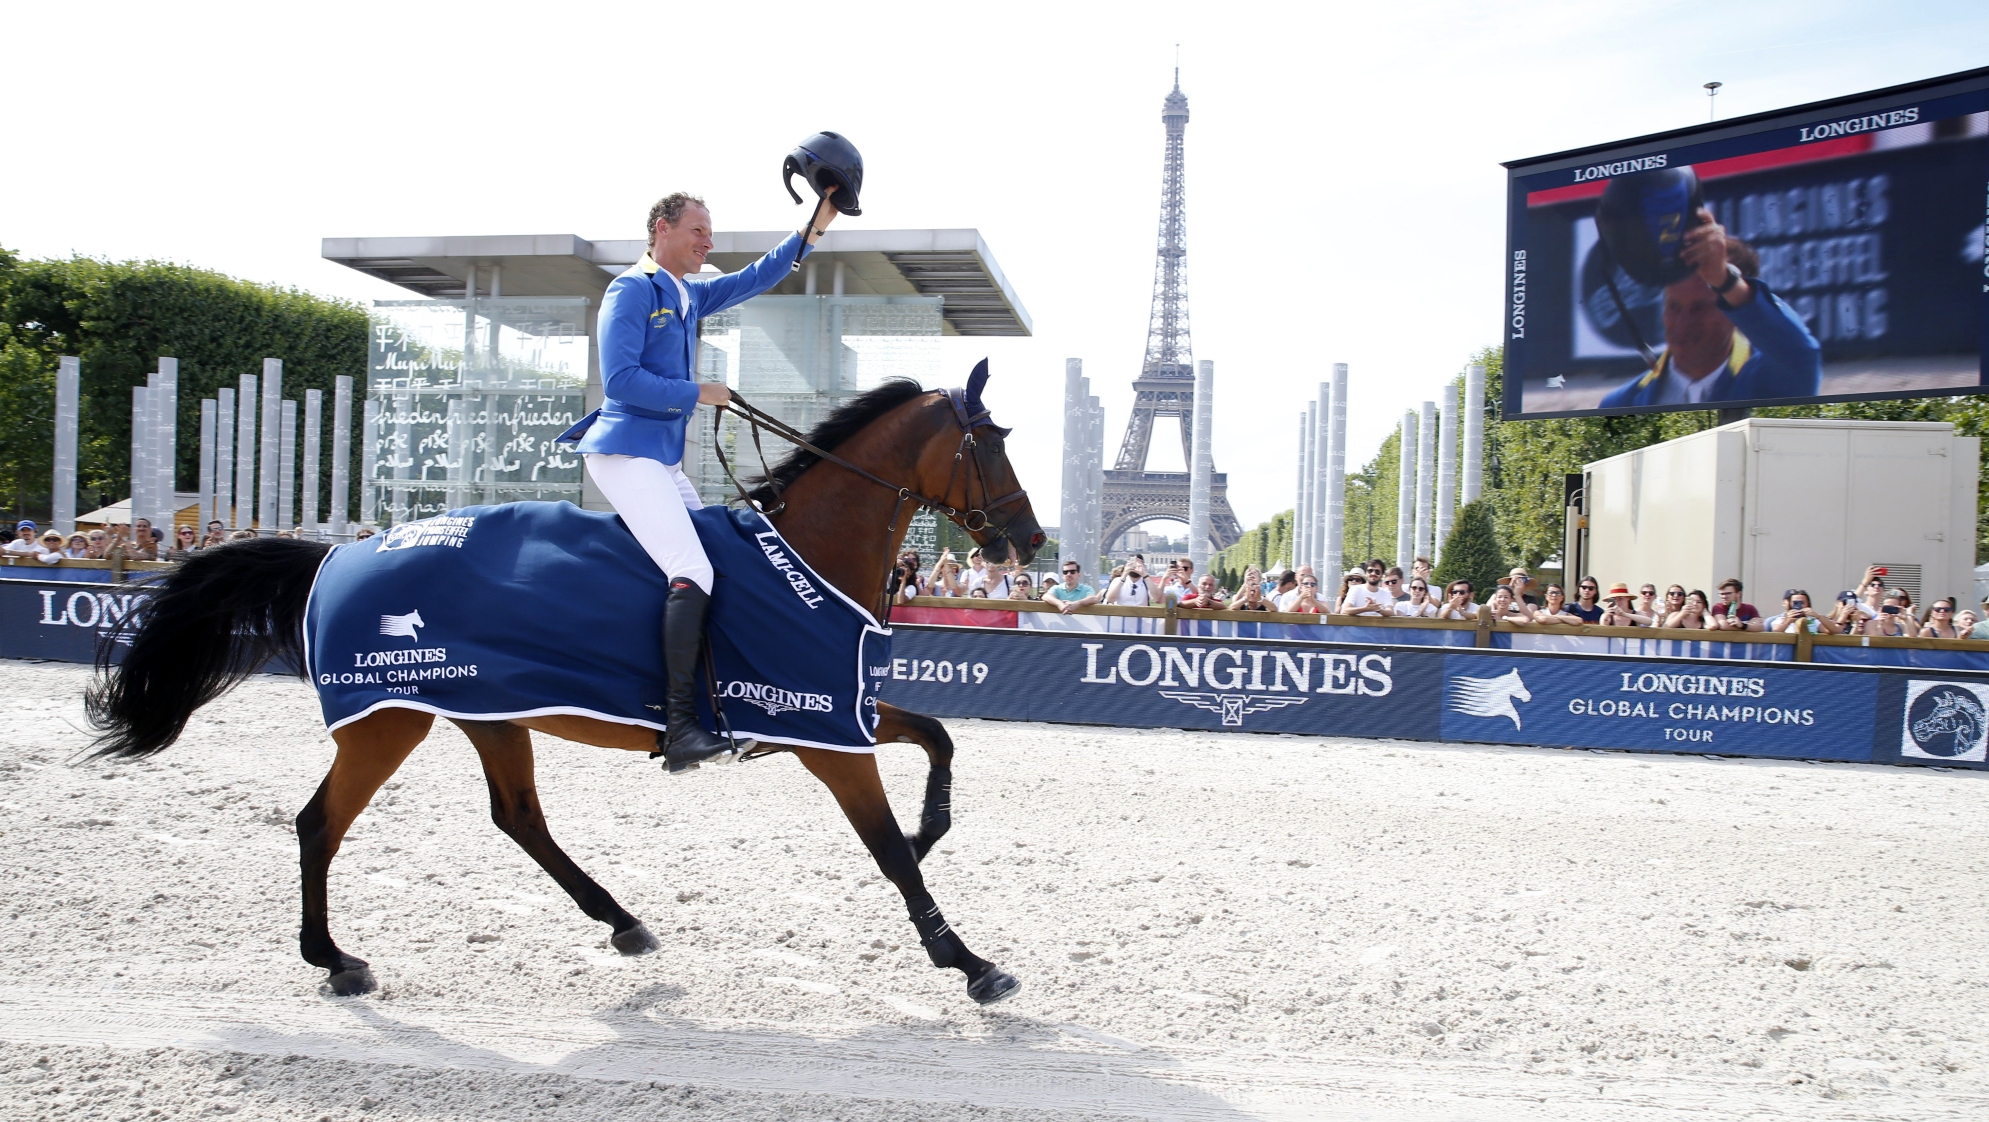 Ahlmann Does The Double With Longines Eiffel Challenge Win